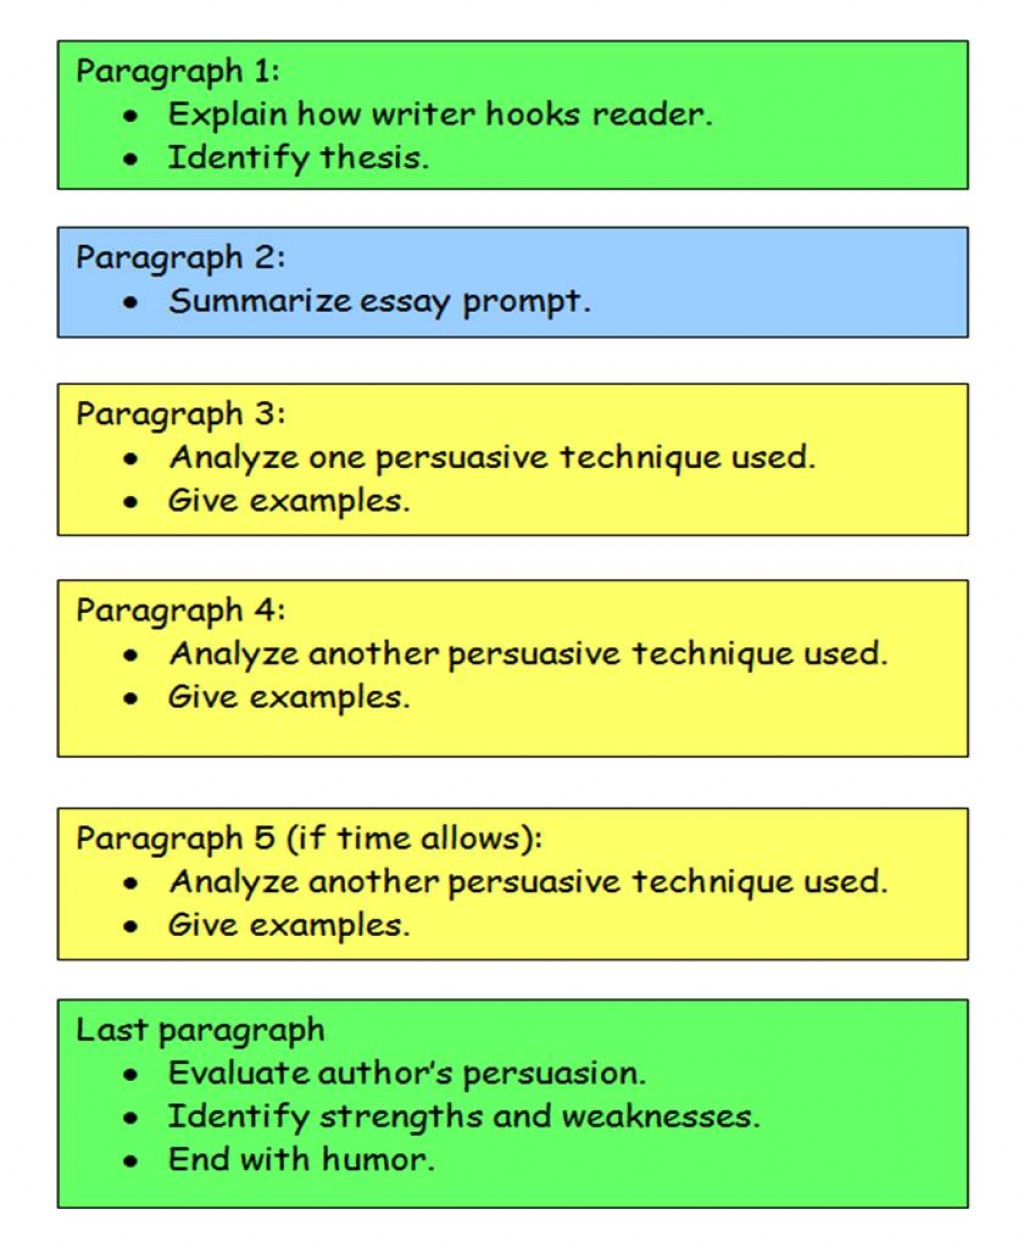 008 Essay Map Structure Use Diagram To See The Of Ne Read Write Think Compare And Contrast Readwritethink Pdf Argumentative Expository Formidable Mind Example Large